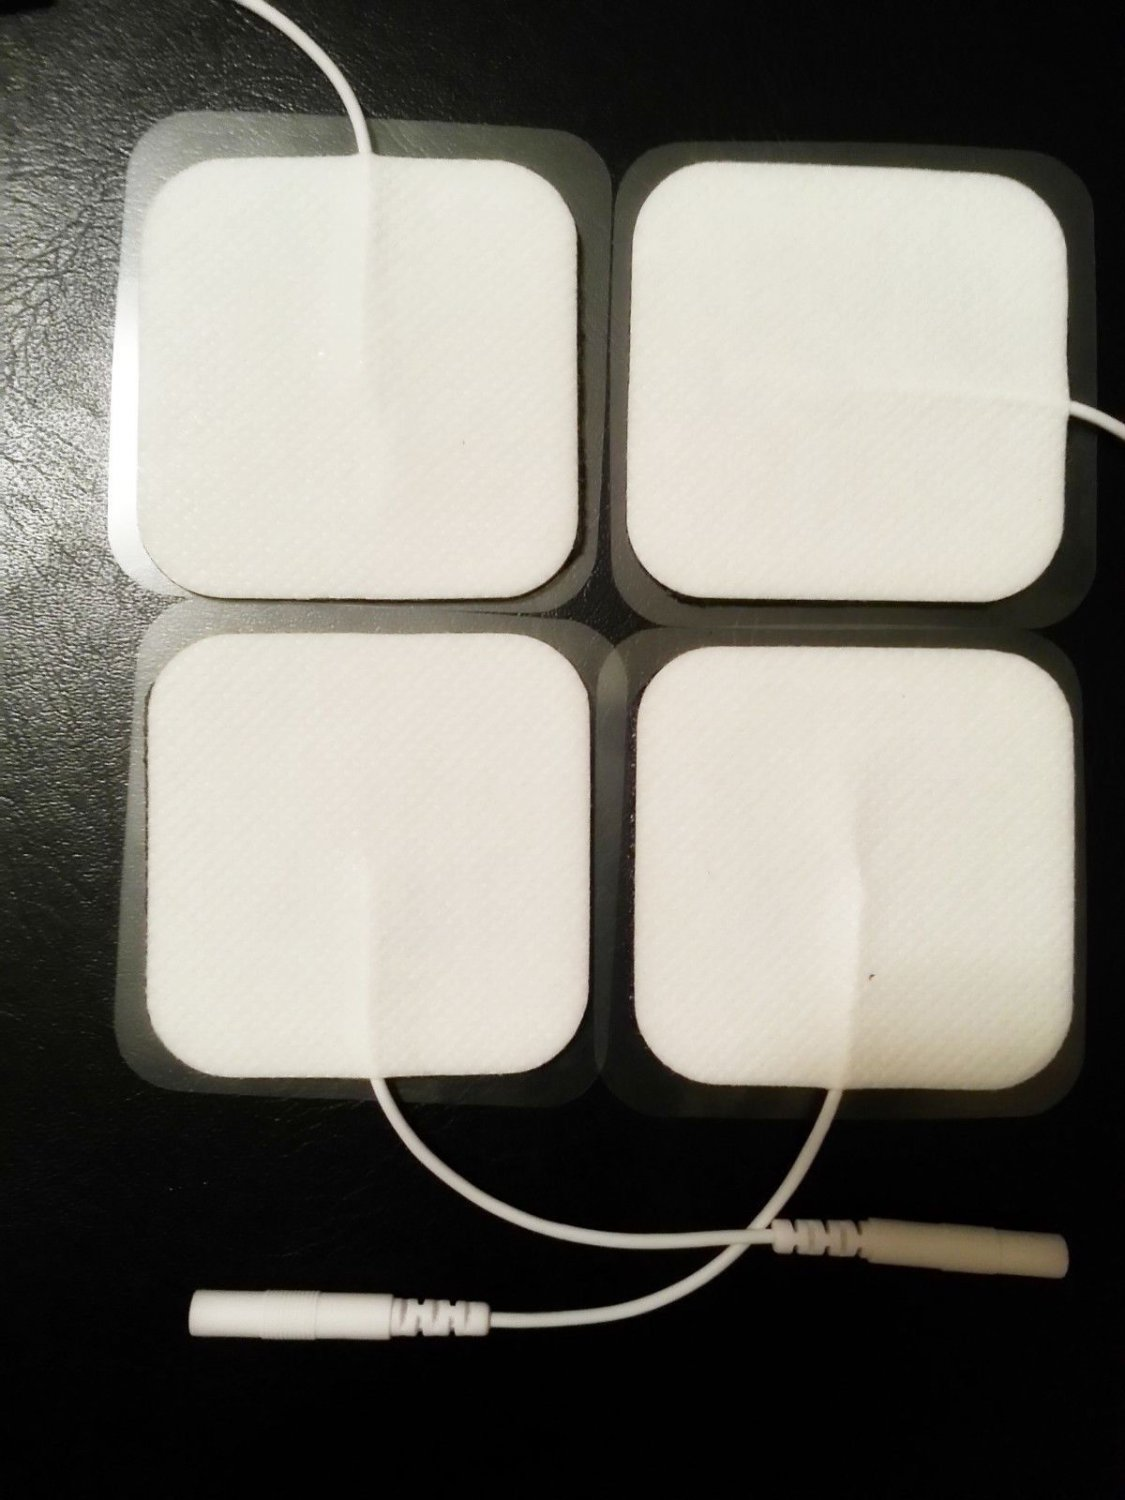 8 PC SQUARE REPLACEMENT MASSAGE PADS FOR RUSSIAN STIM MICROCURRENT IF TENS ESTIM